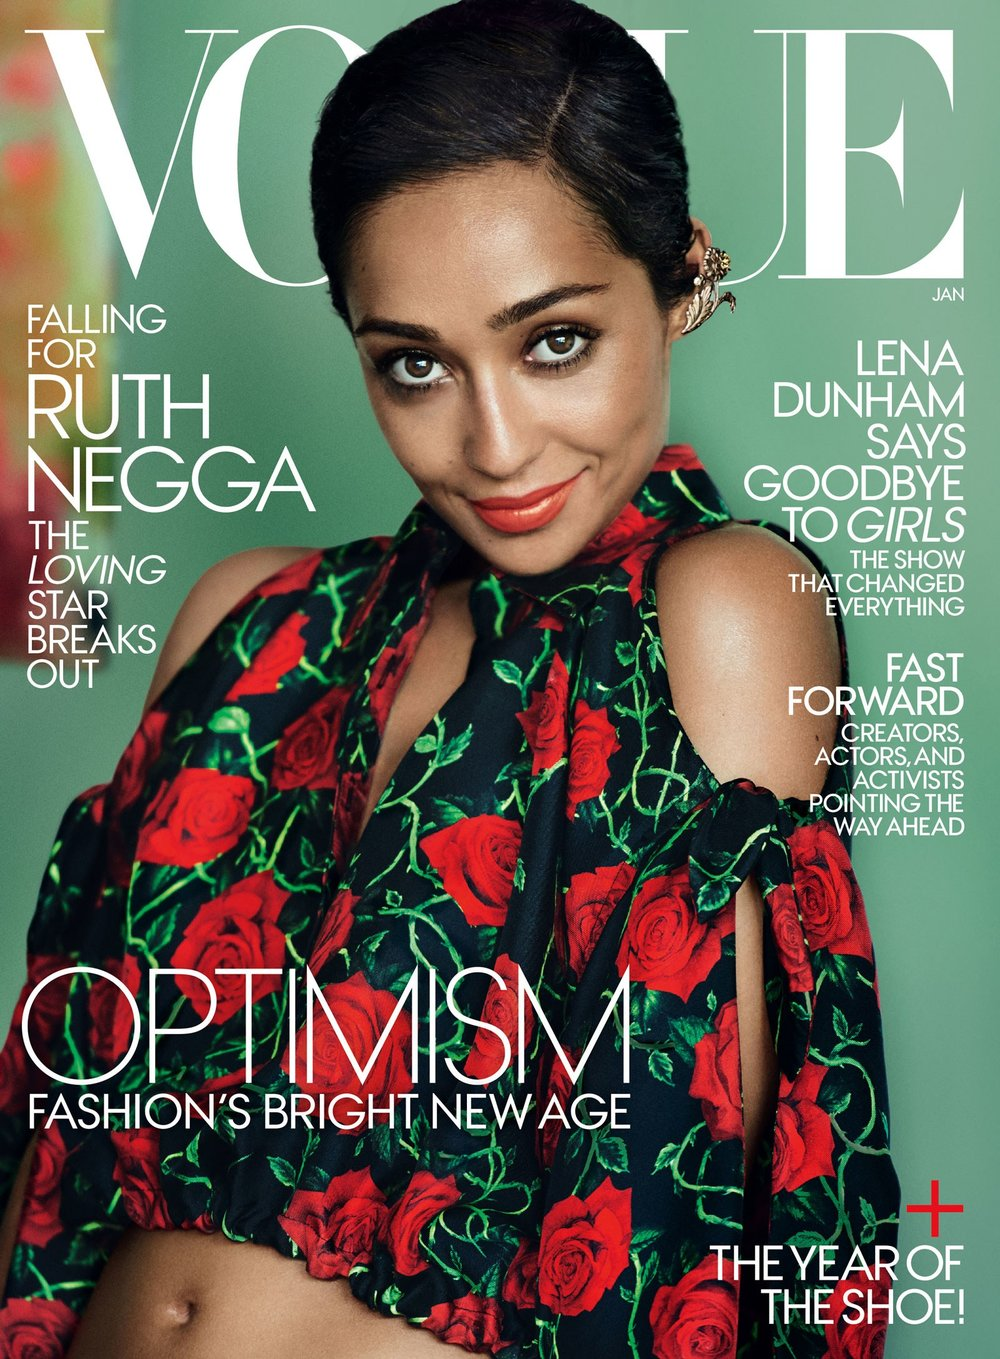 ruth-negga-vogue-cover-holding.jpg